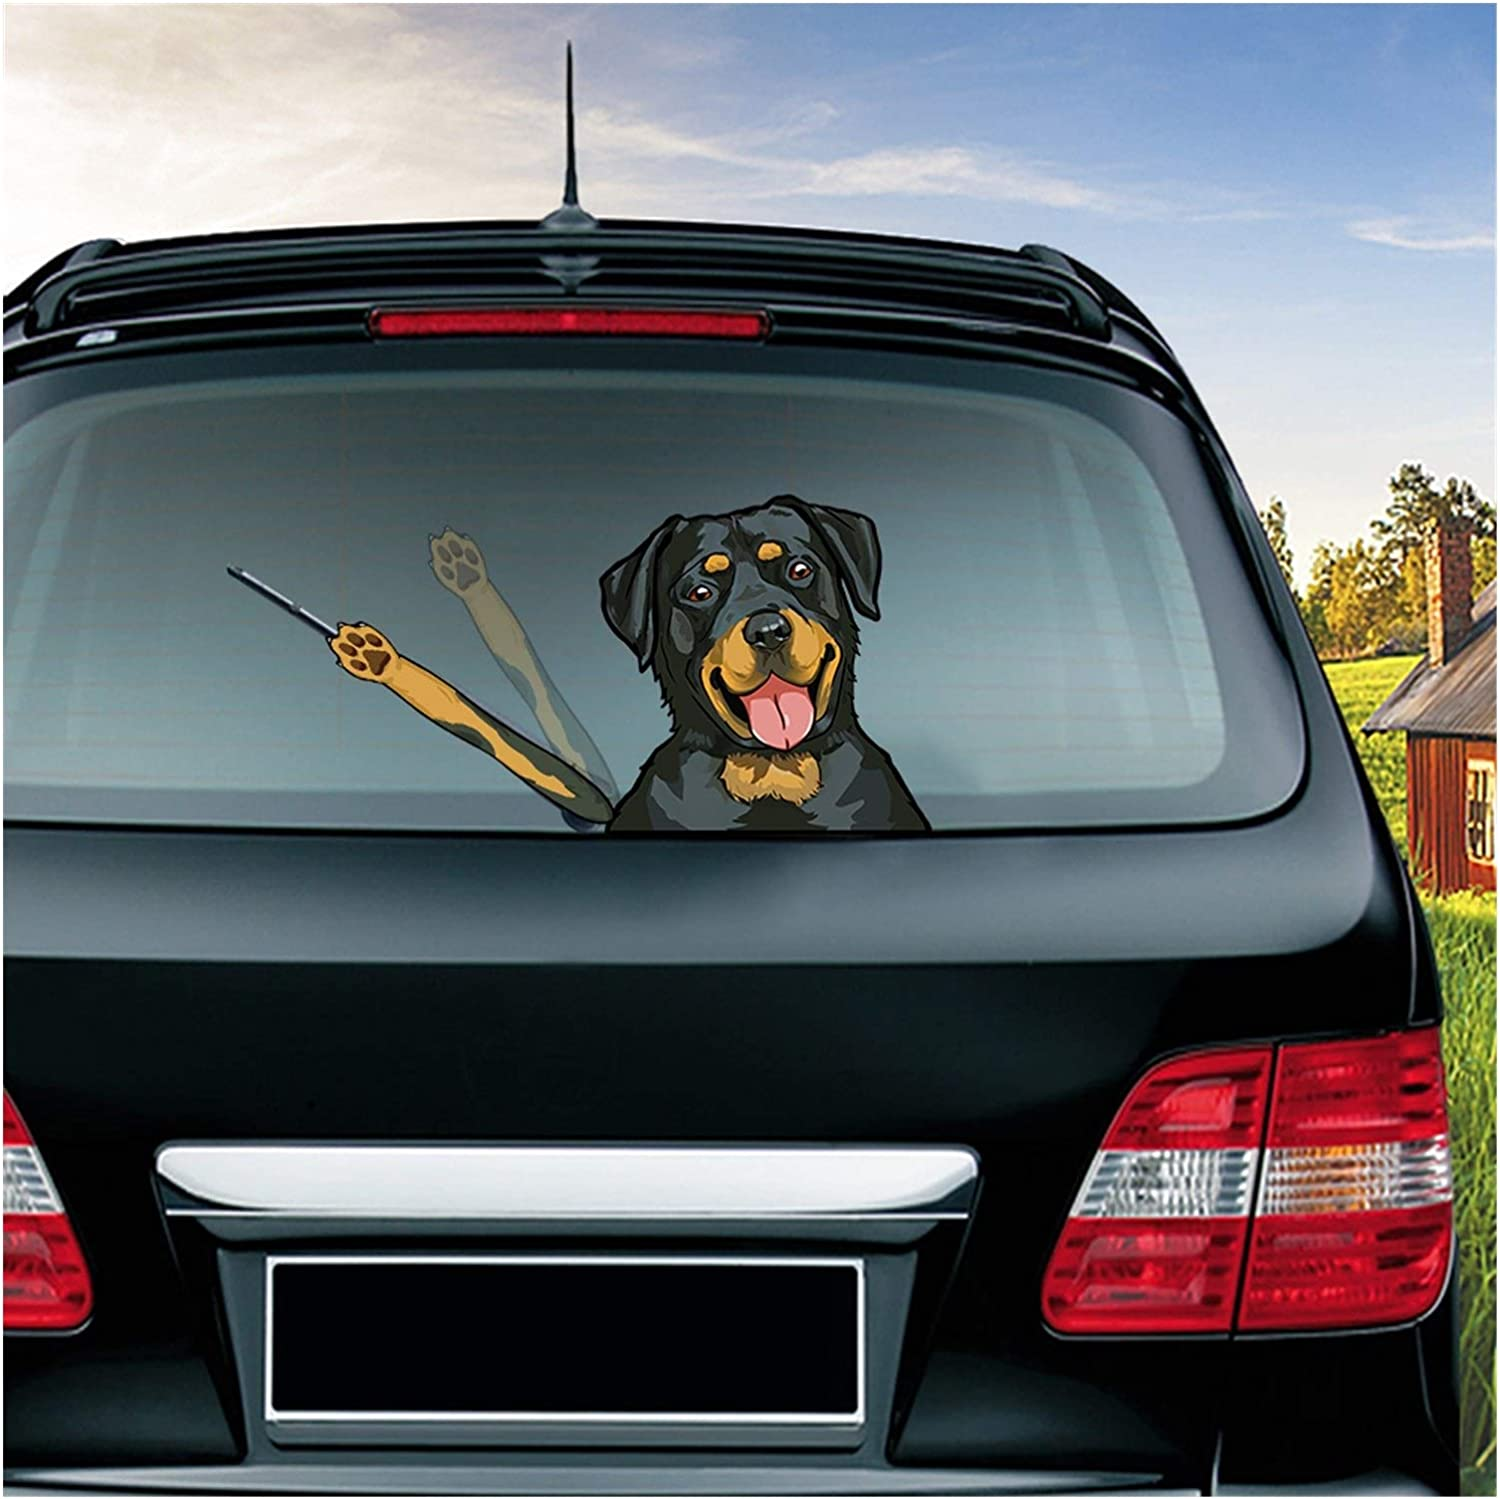 Amazon Com Jgzwlkj Car Stickers New Cute Cartoon Dog Car Sticker Waving Wiper Decals Car Styling Funny Rear Windshield Window Wiper Stickers For Car Color Name Beagle Home Kitchen [ 1498 x 1500 Pixel ]